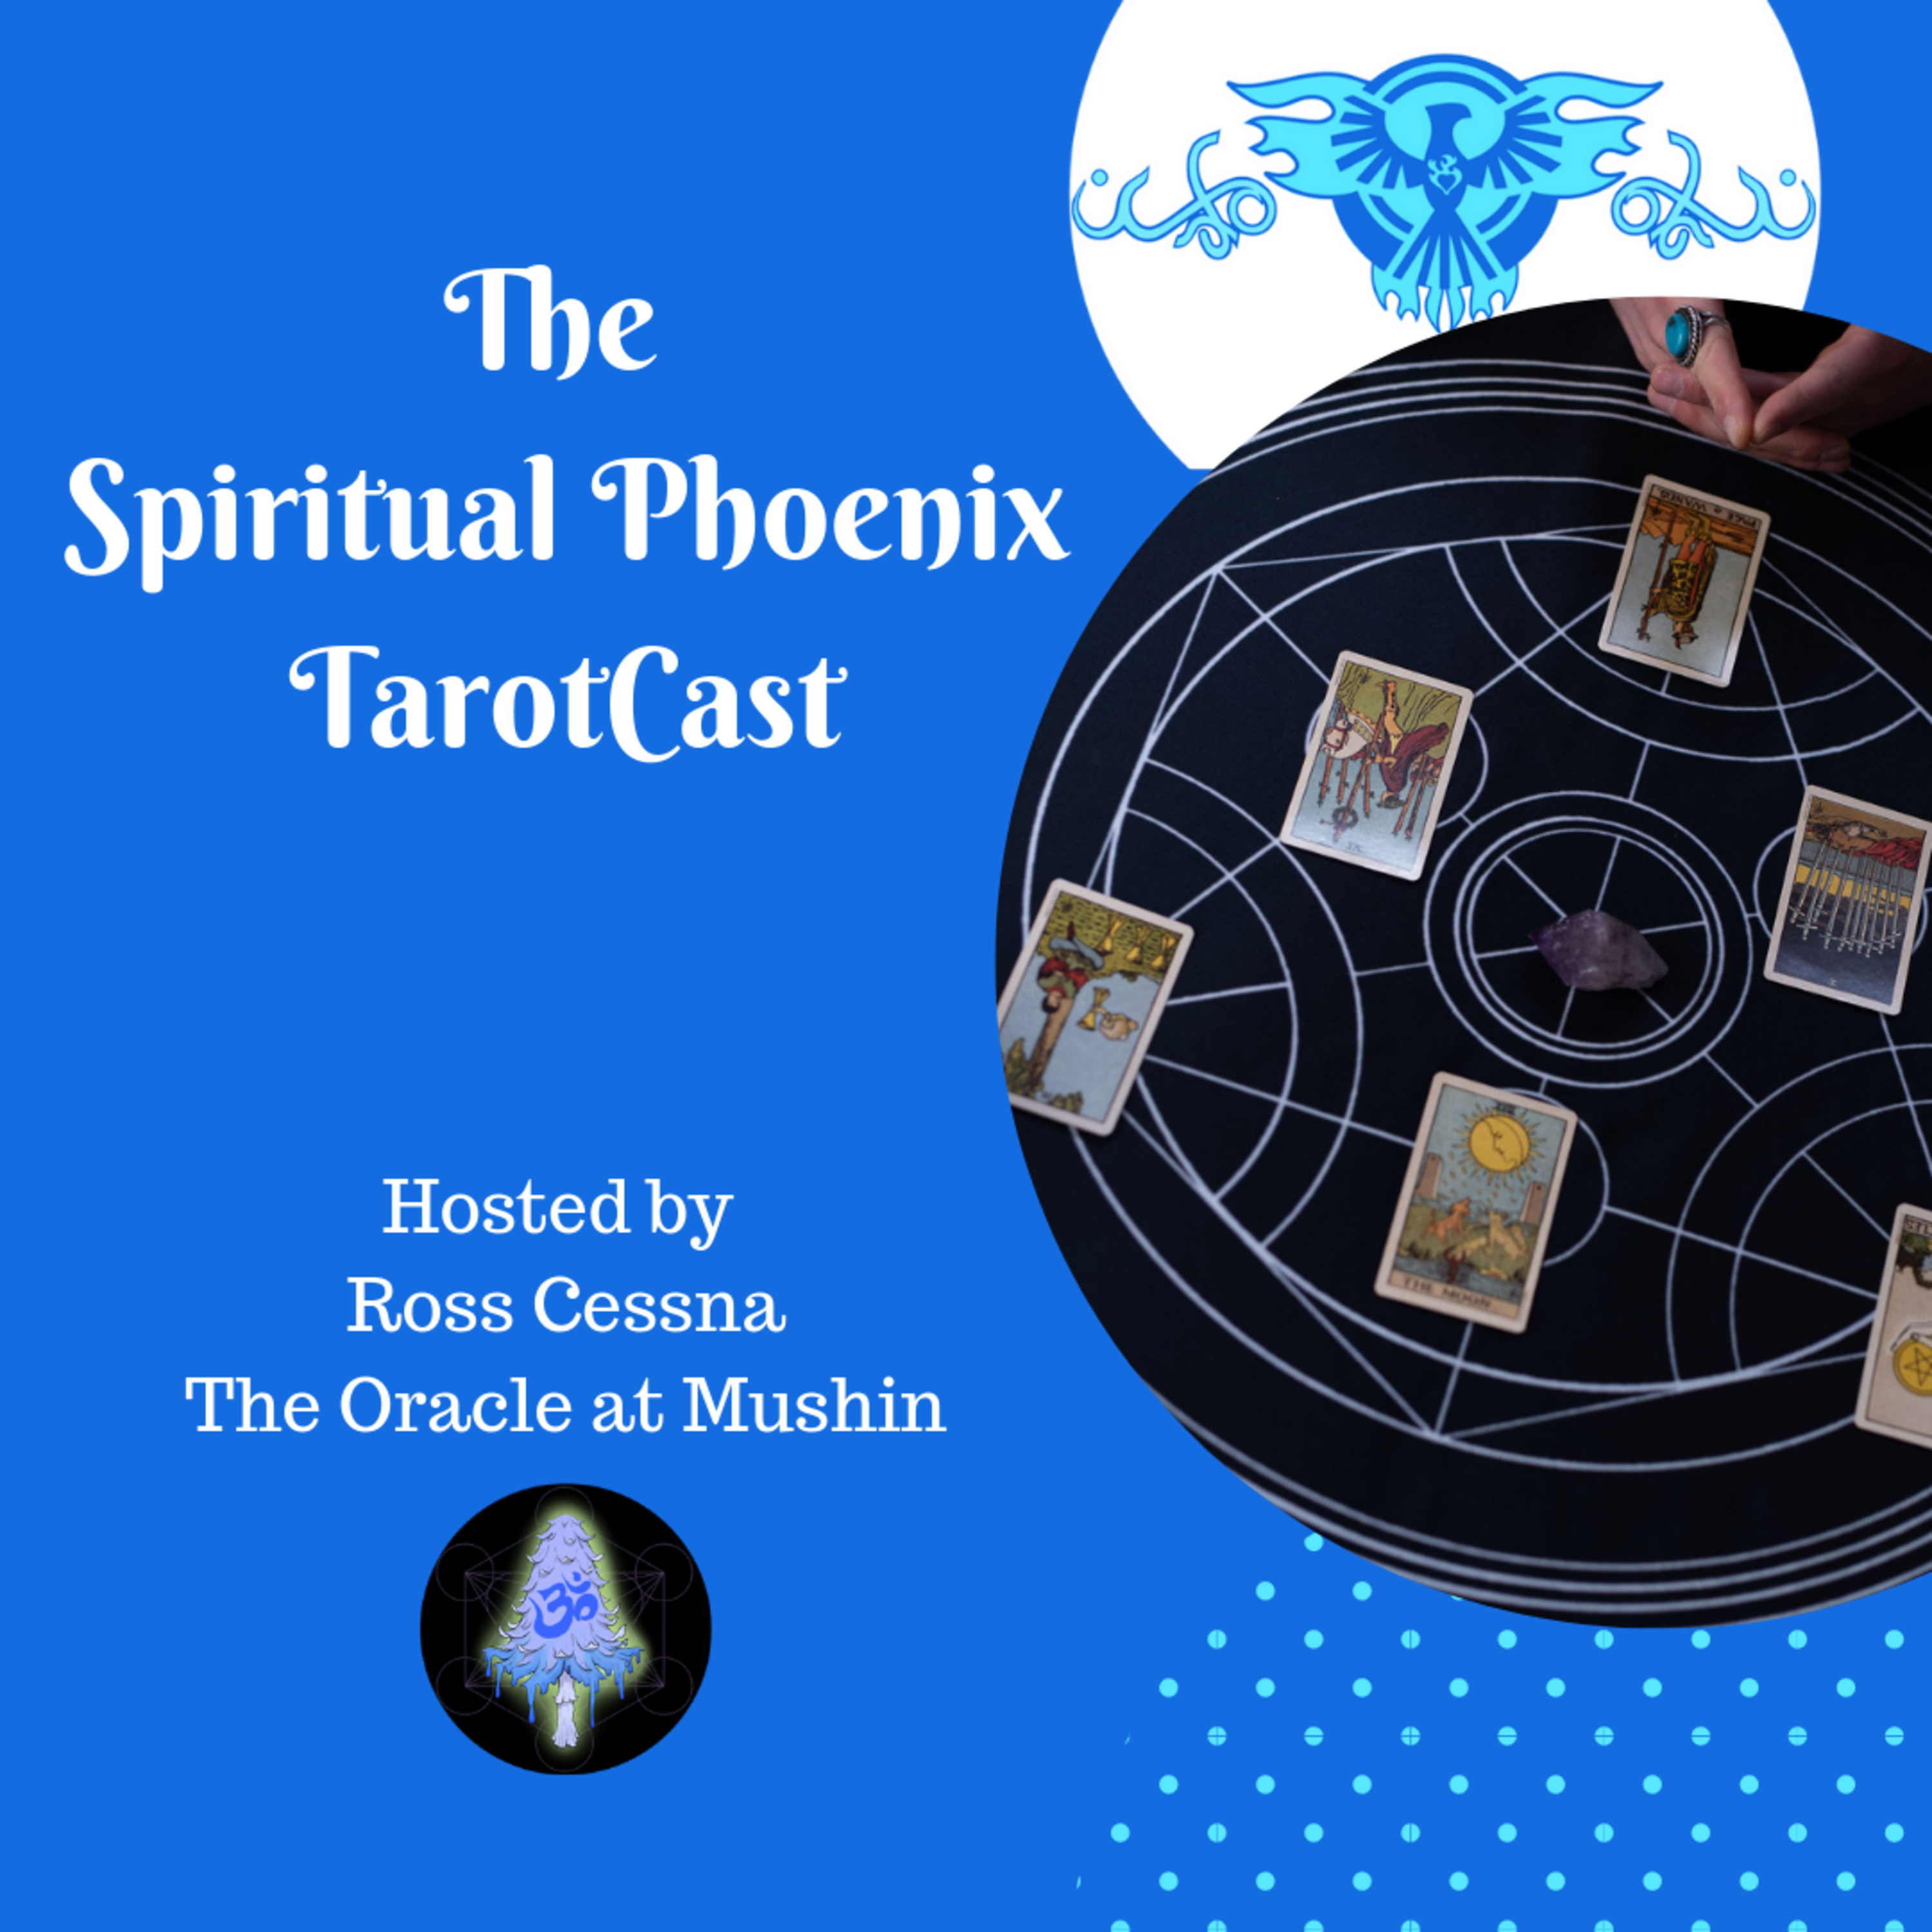 The Wheel, Decrease, The Fragrance of Life, and Consulting your guides   Tarot Reading for April 1st